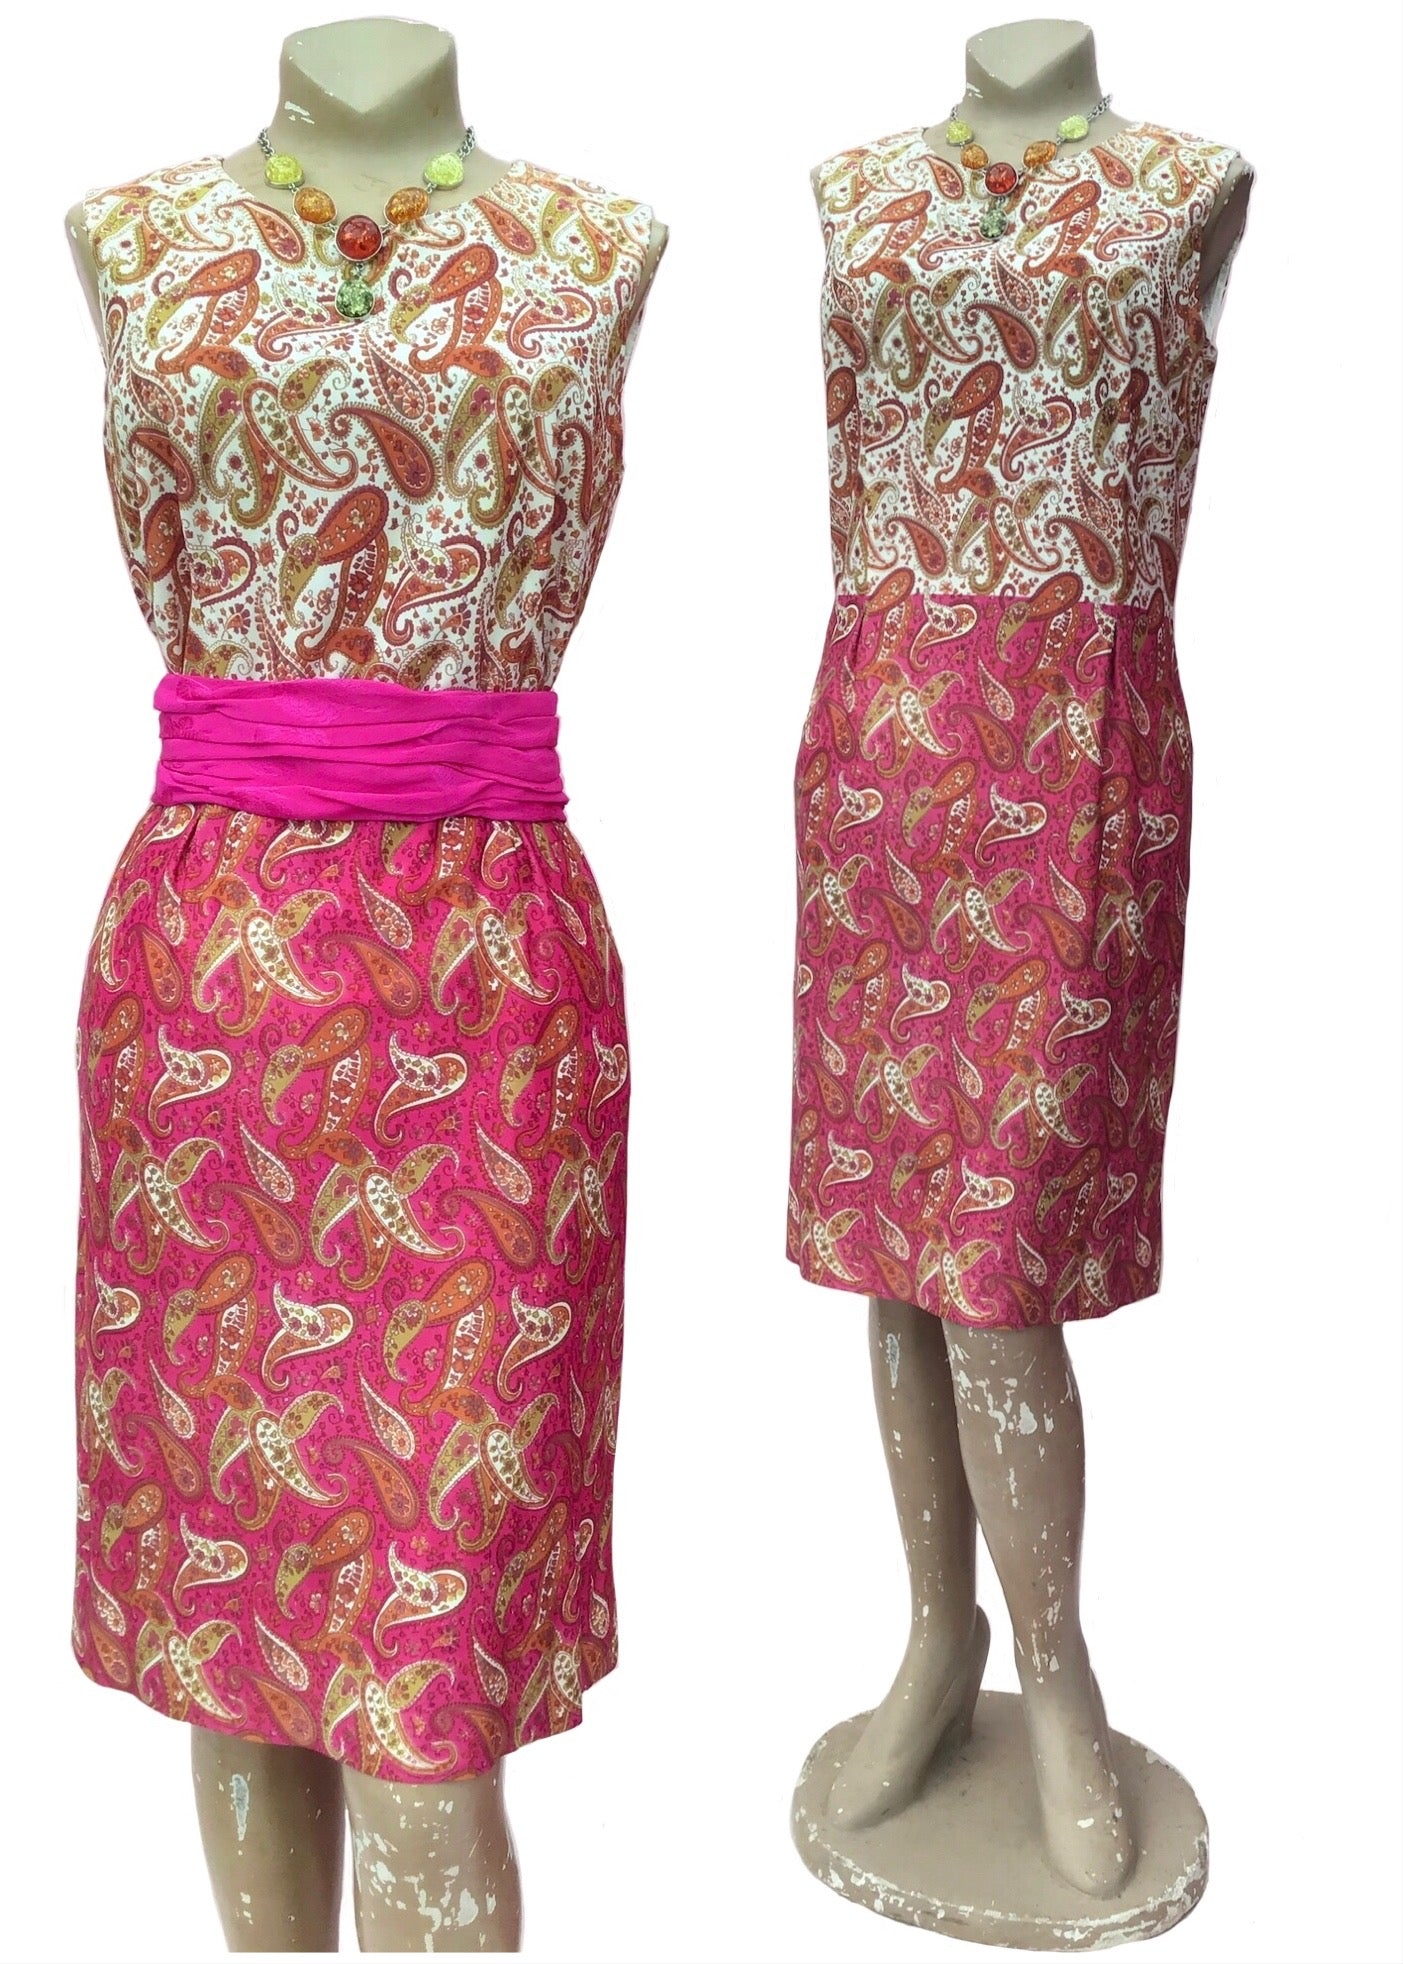 Vintage sixties pink paisley shift dress, mod fashion